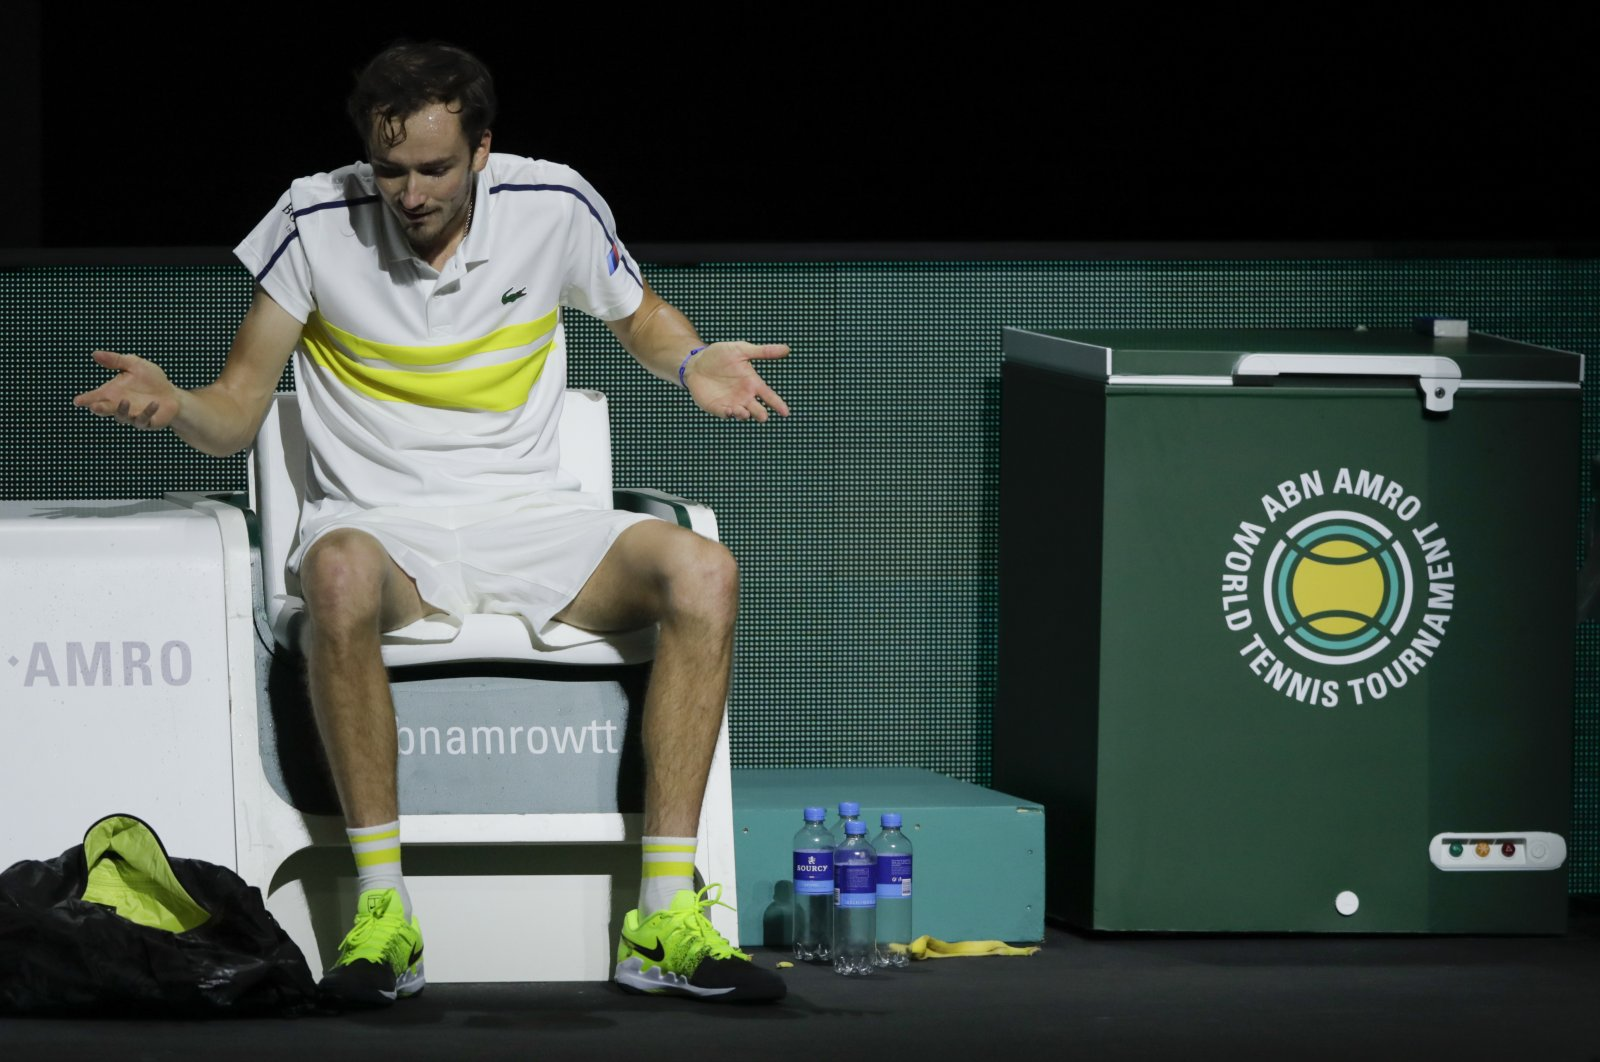 Russia's Daniil Medvedev reacts after losing against Serbia's Dusan Lajovic in a first-round men's singles match of the ABN AMRO world tennis tournament at Ahoy Arena in Rotterdam, Netherlands, March 3, 2021. (AP Photo)